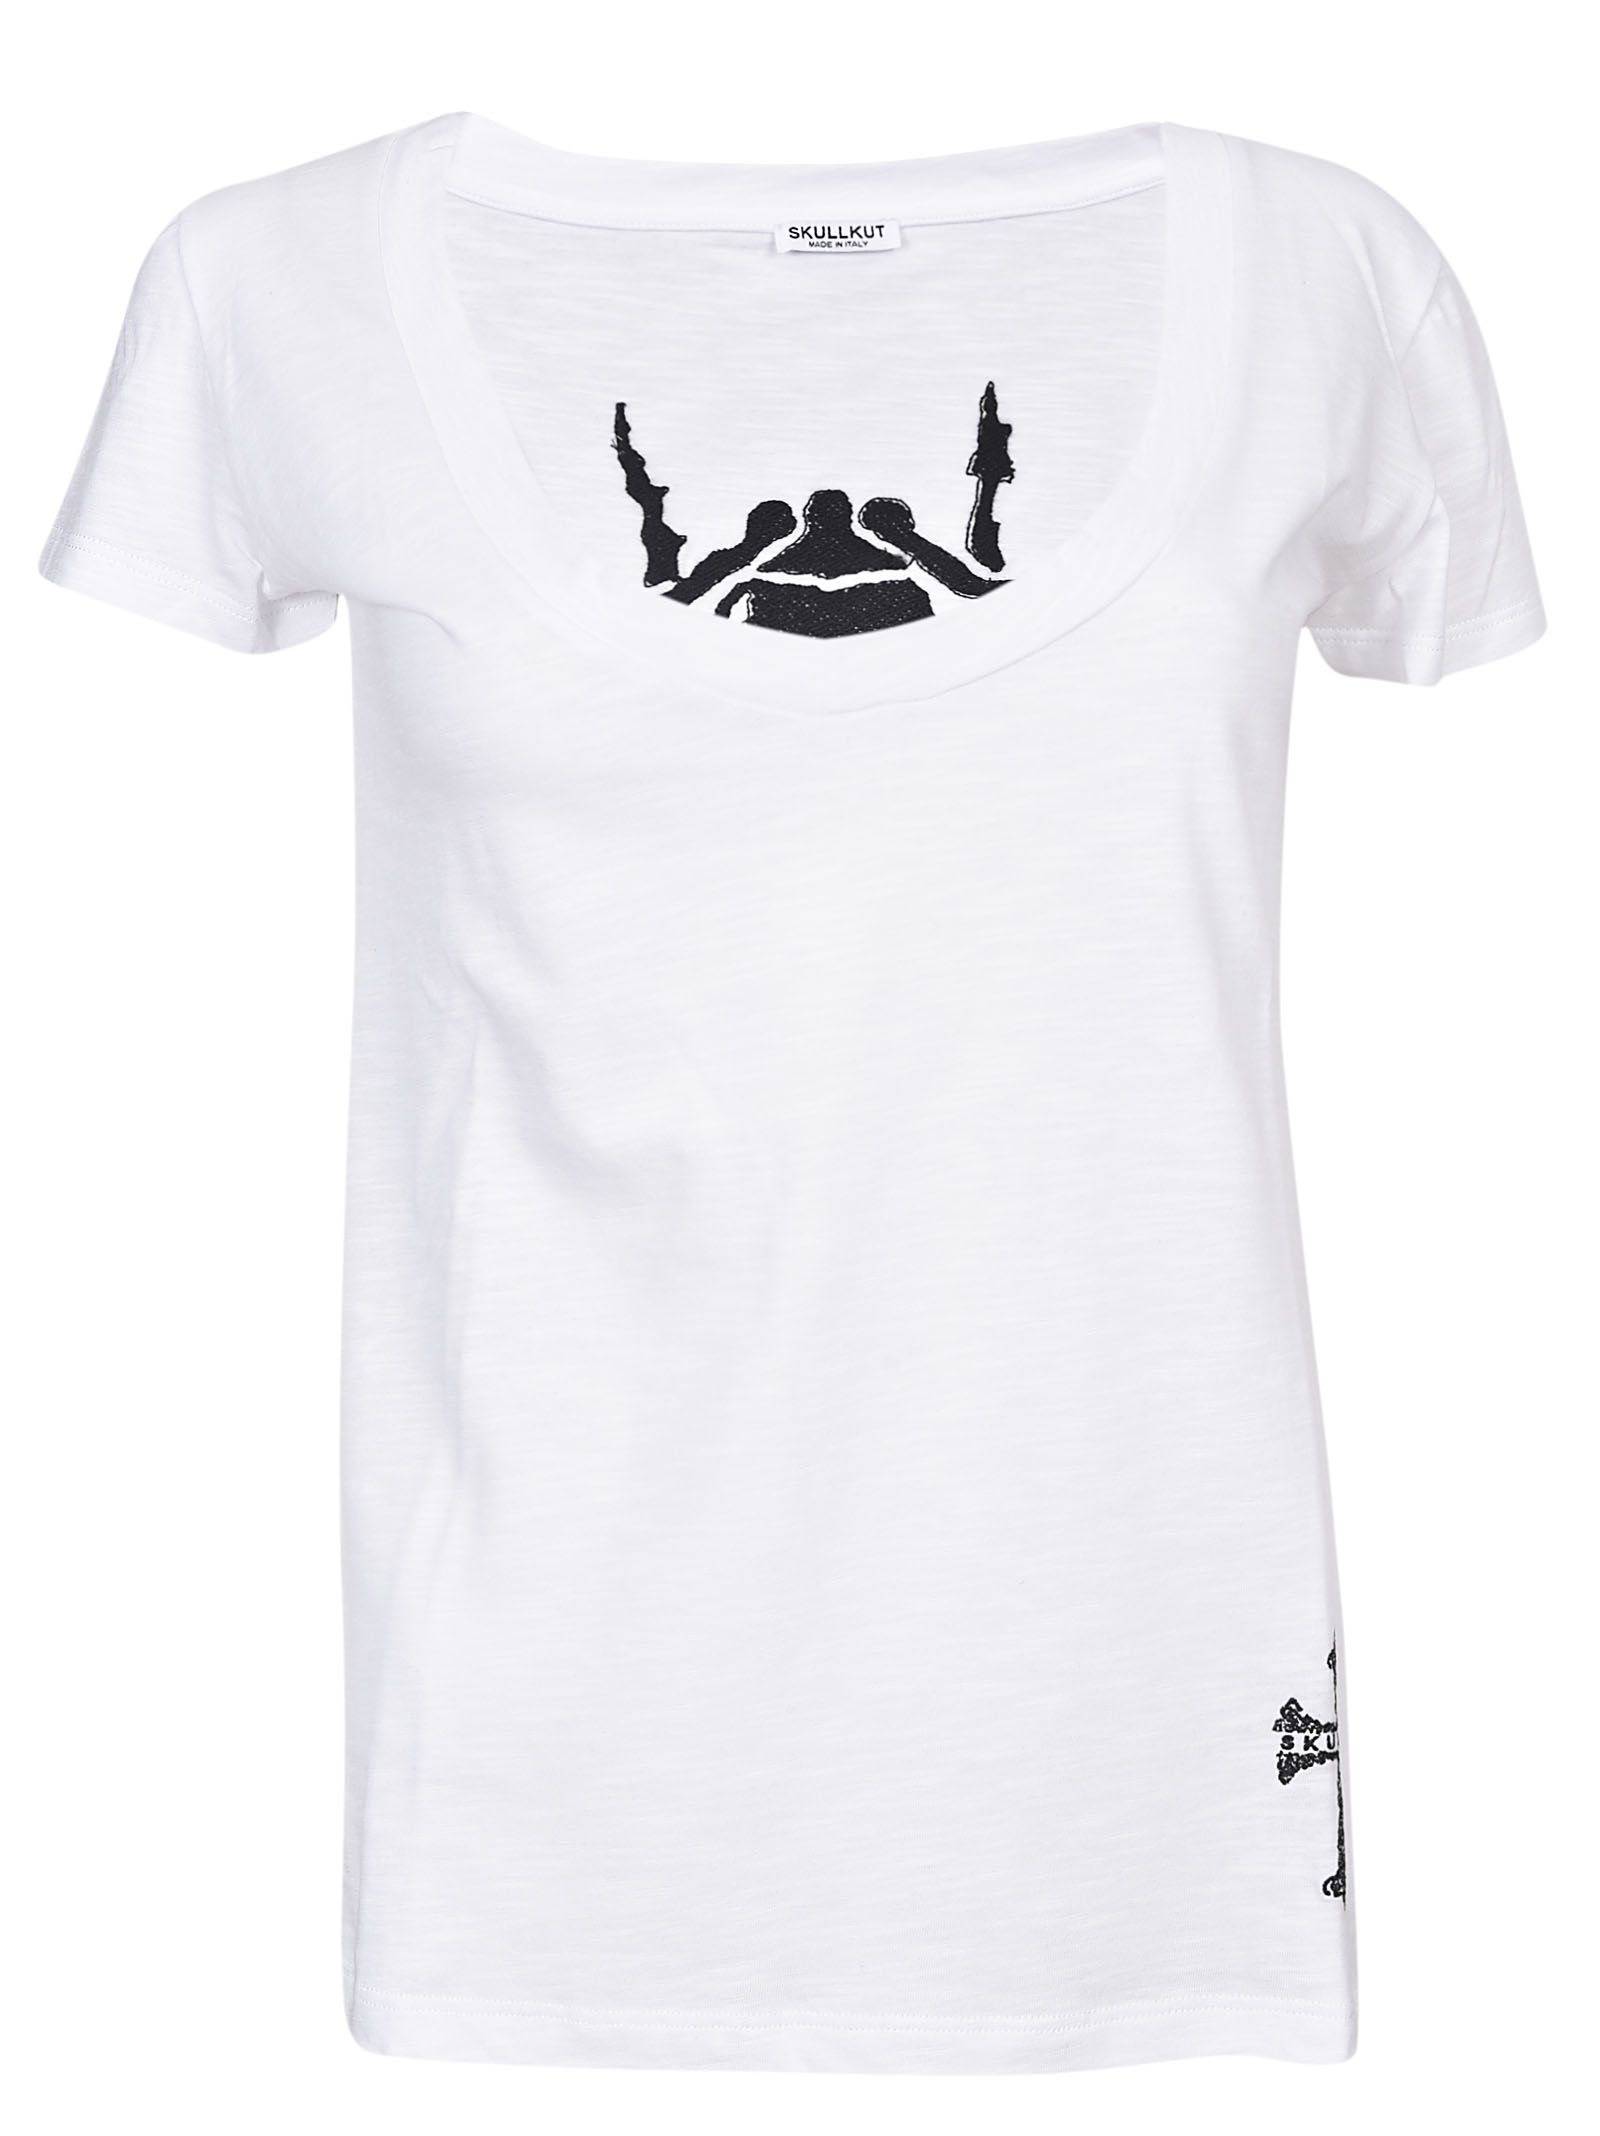 Skullkut t-shirt ciliated beetle